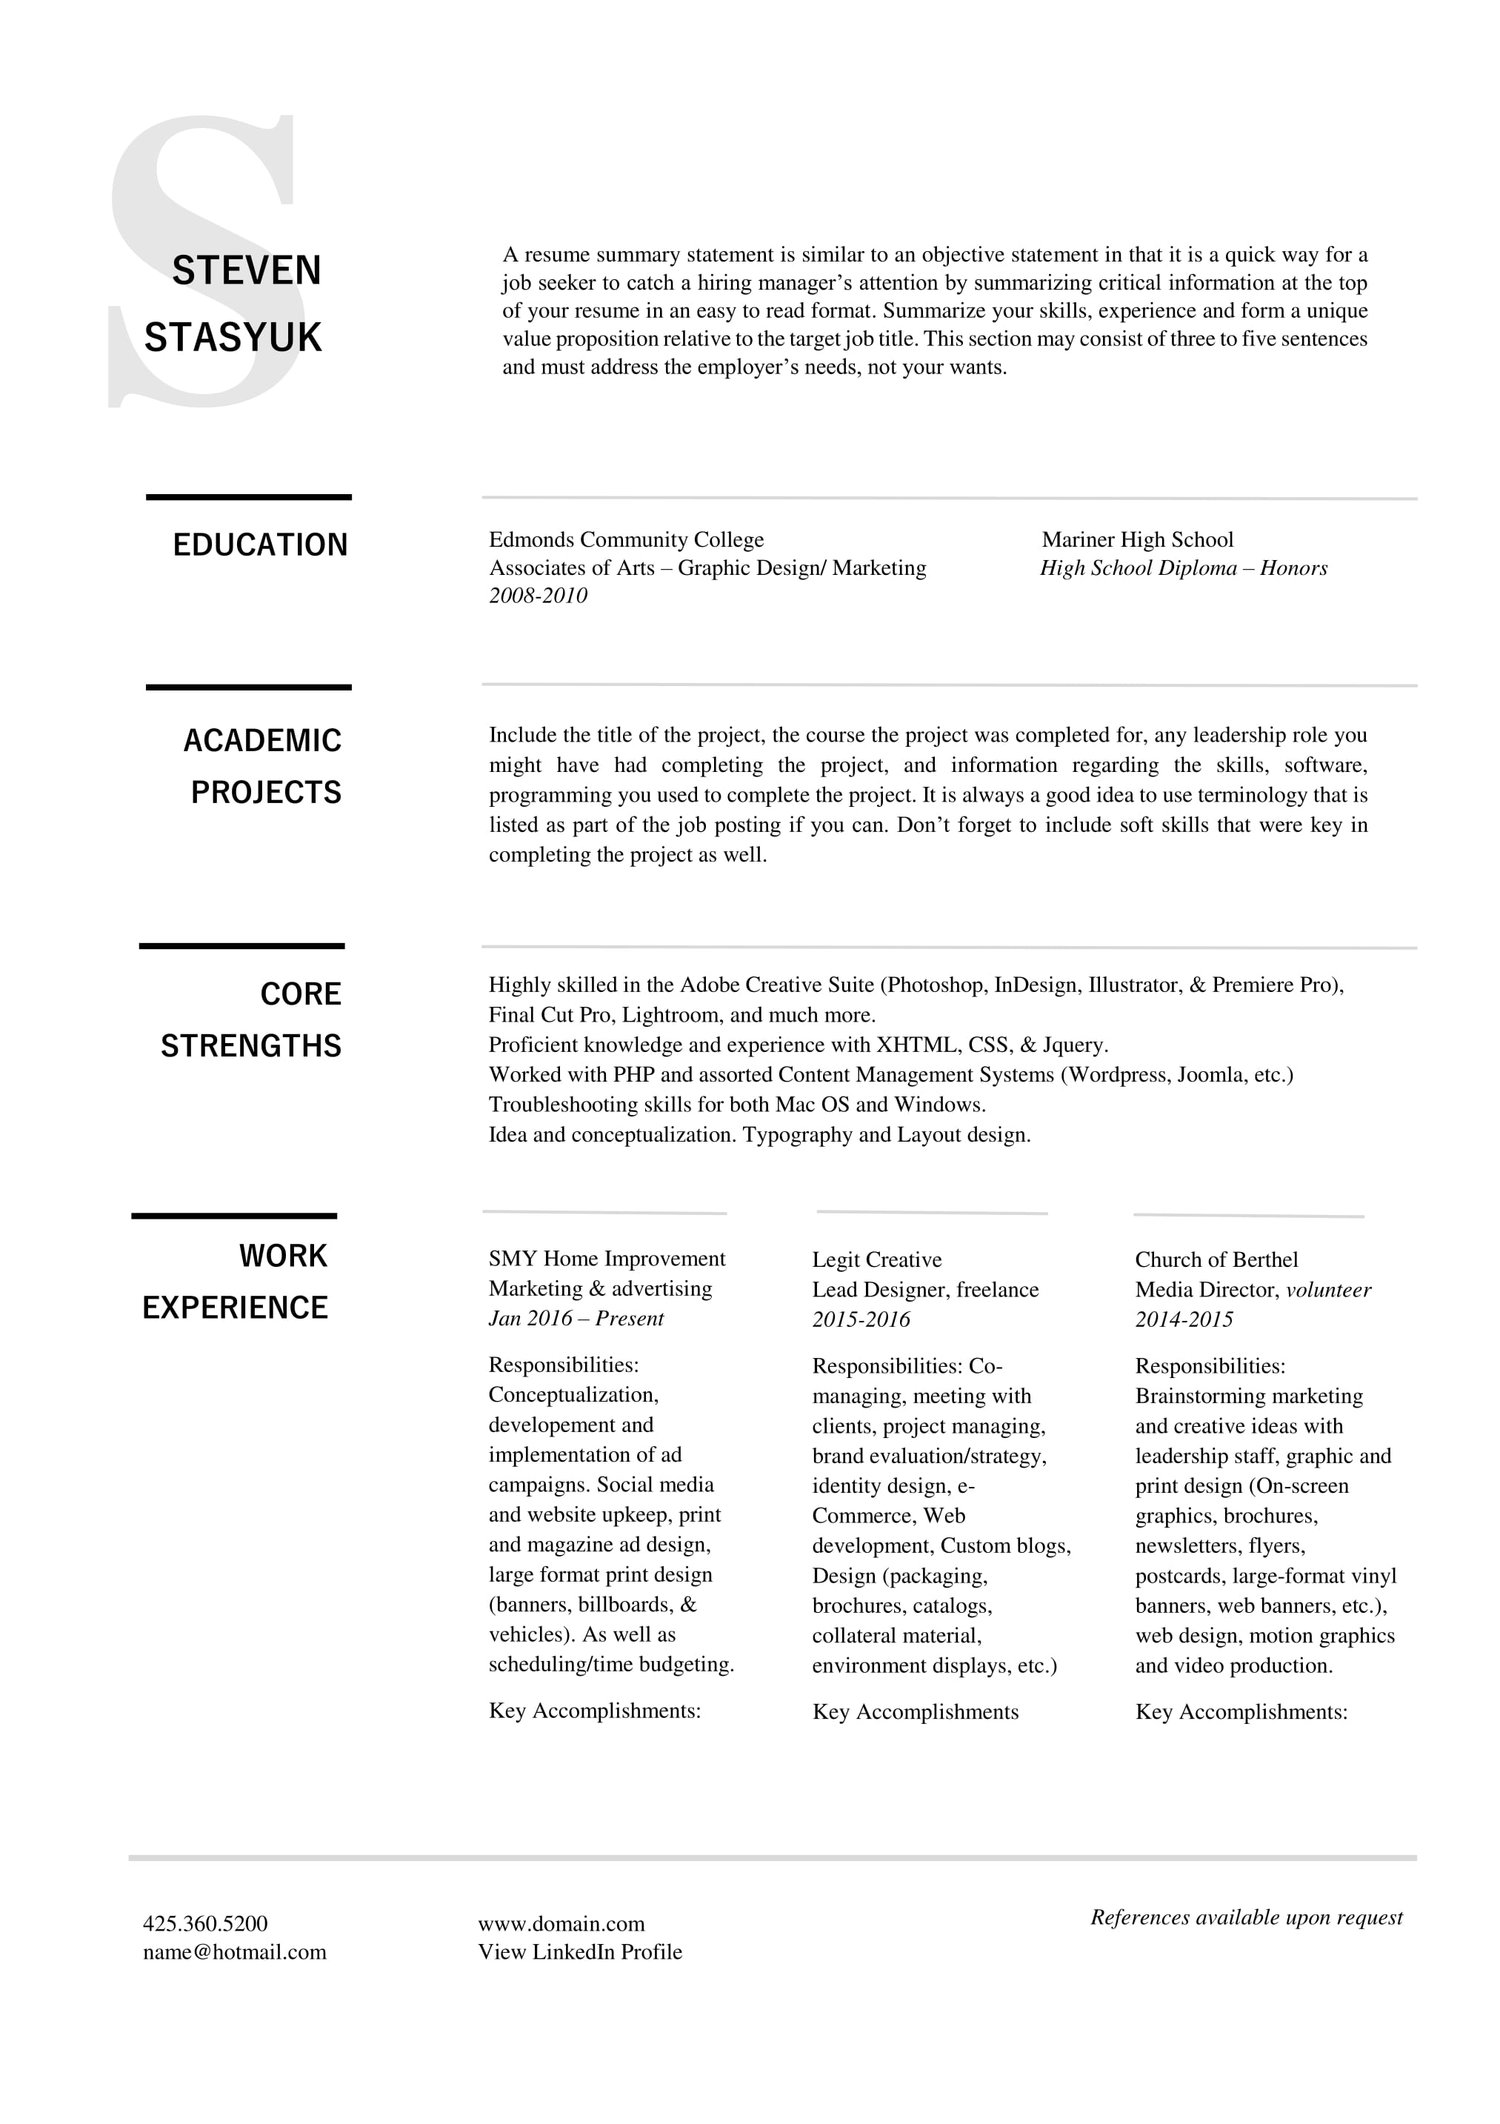 Recent Graduate Cover Letter Sample from static1.squarespace.com